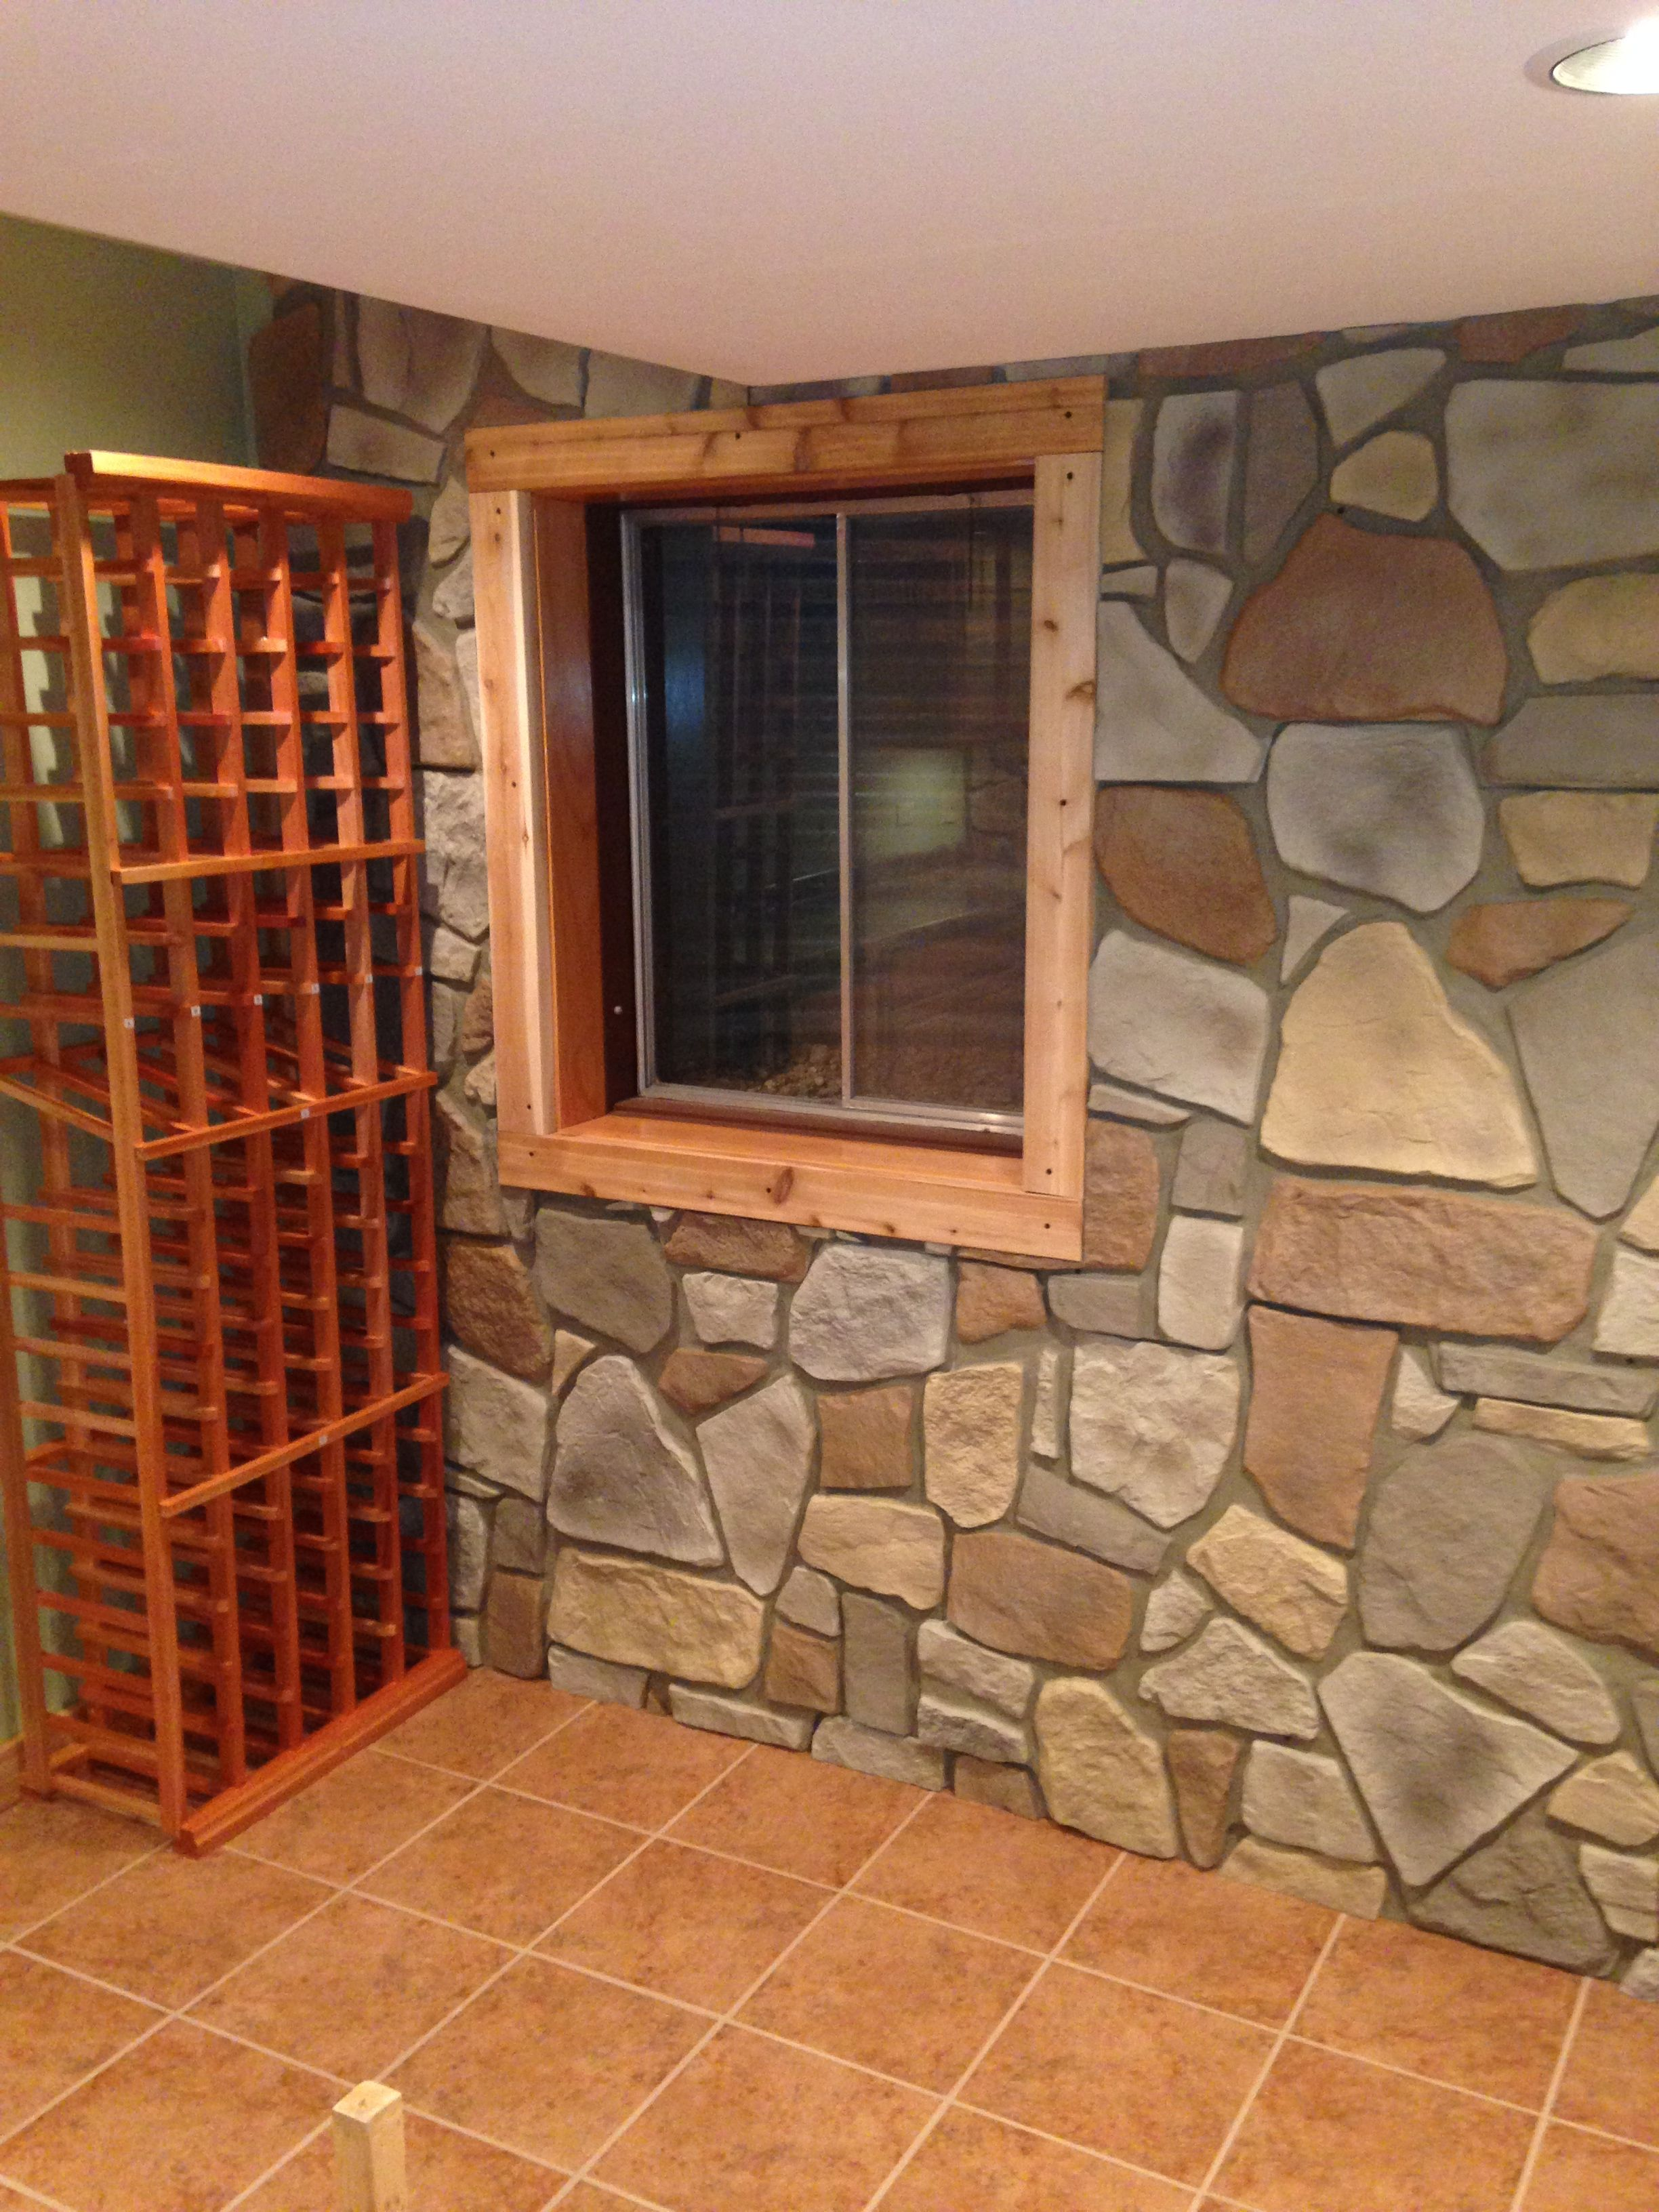 Window well decor  advice on how to go about fixing your homeus interior ueueue click